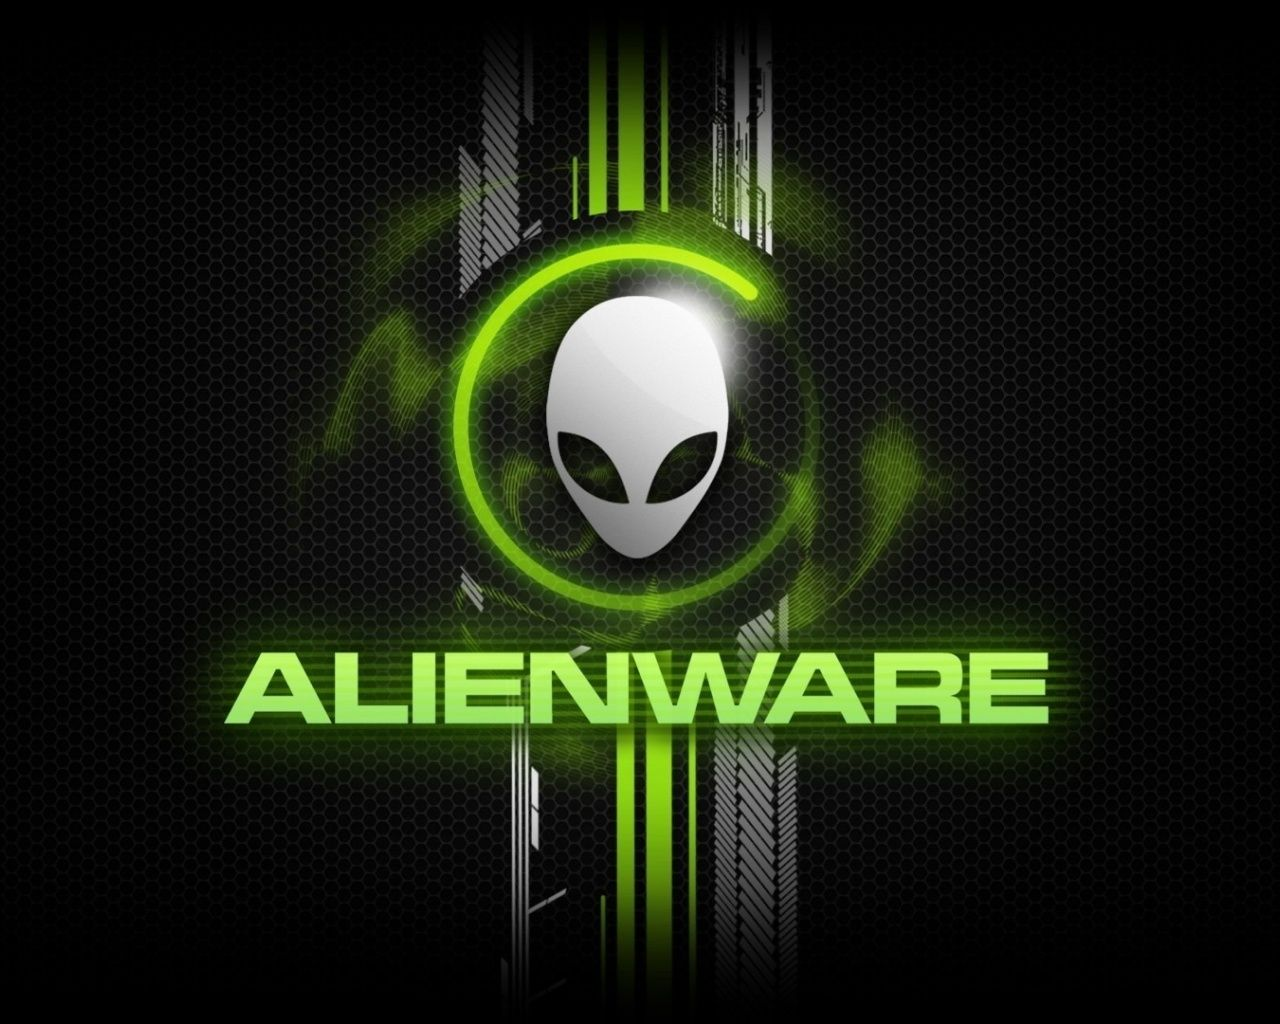 alienware 1080p wallpaper